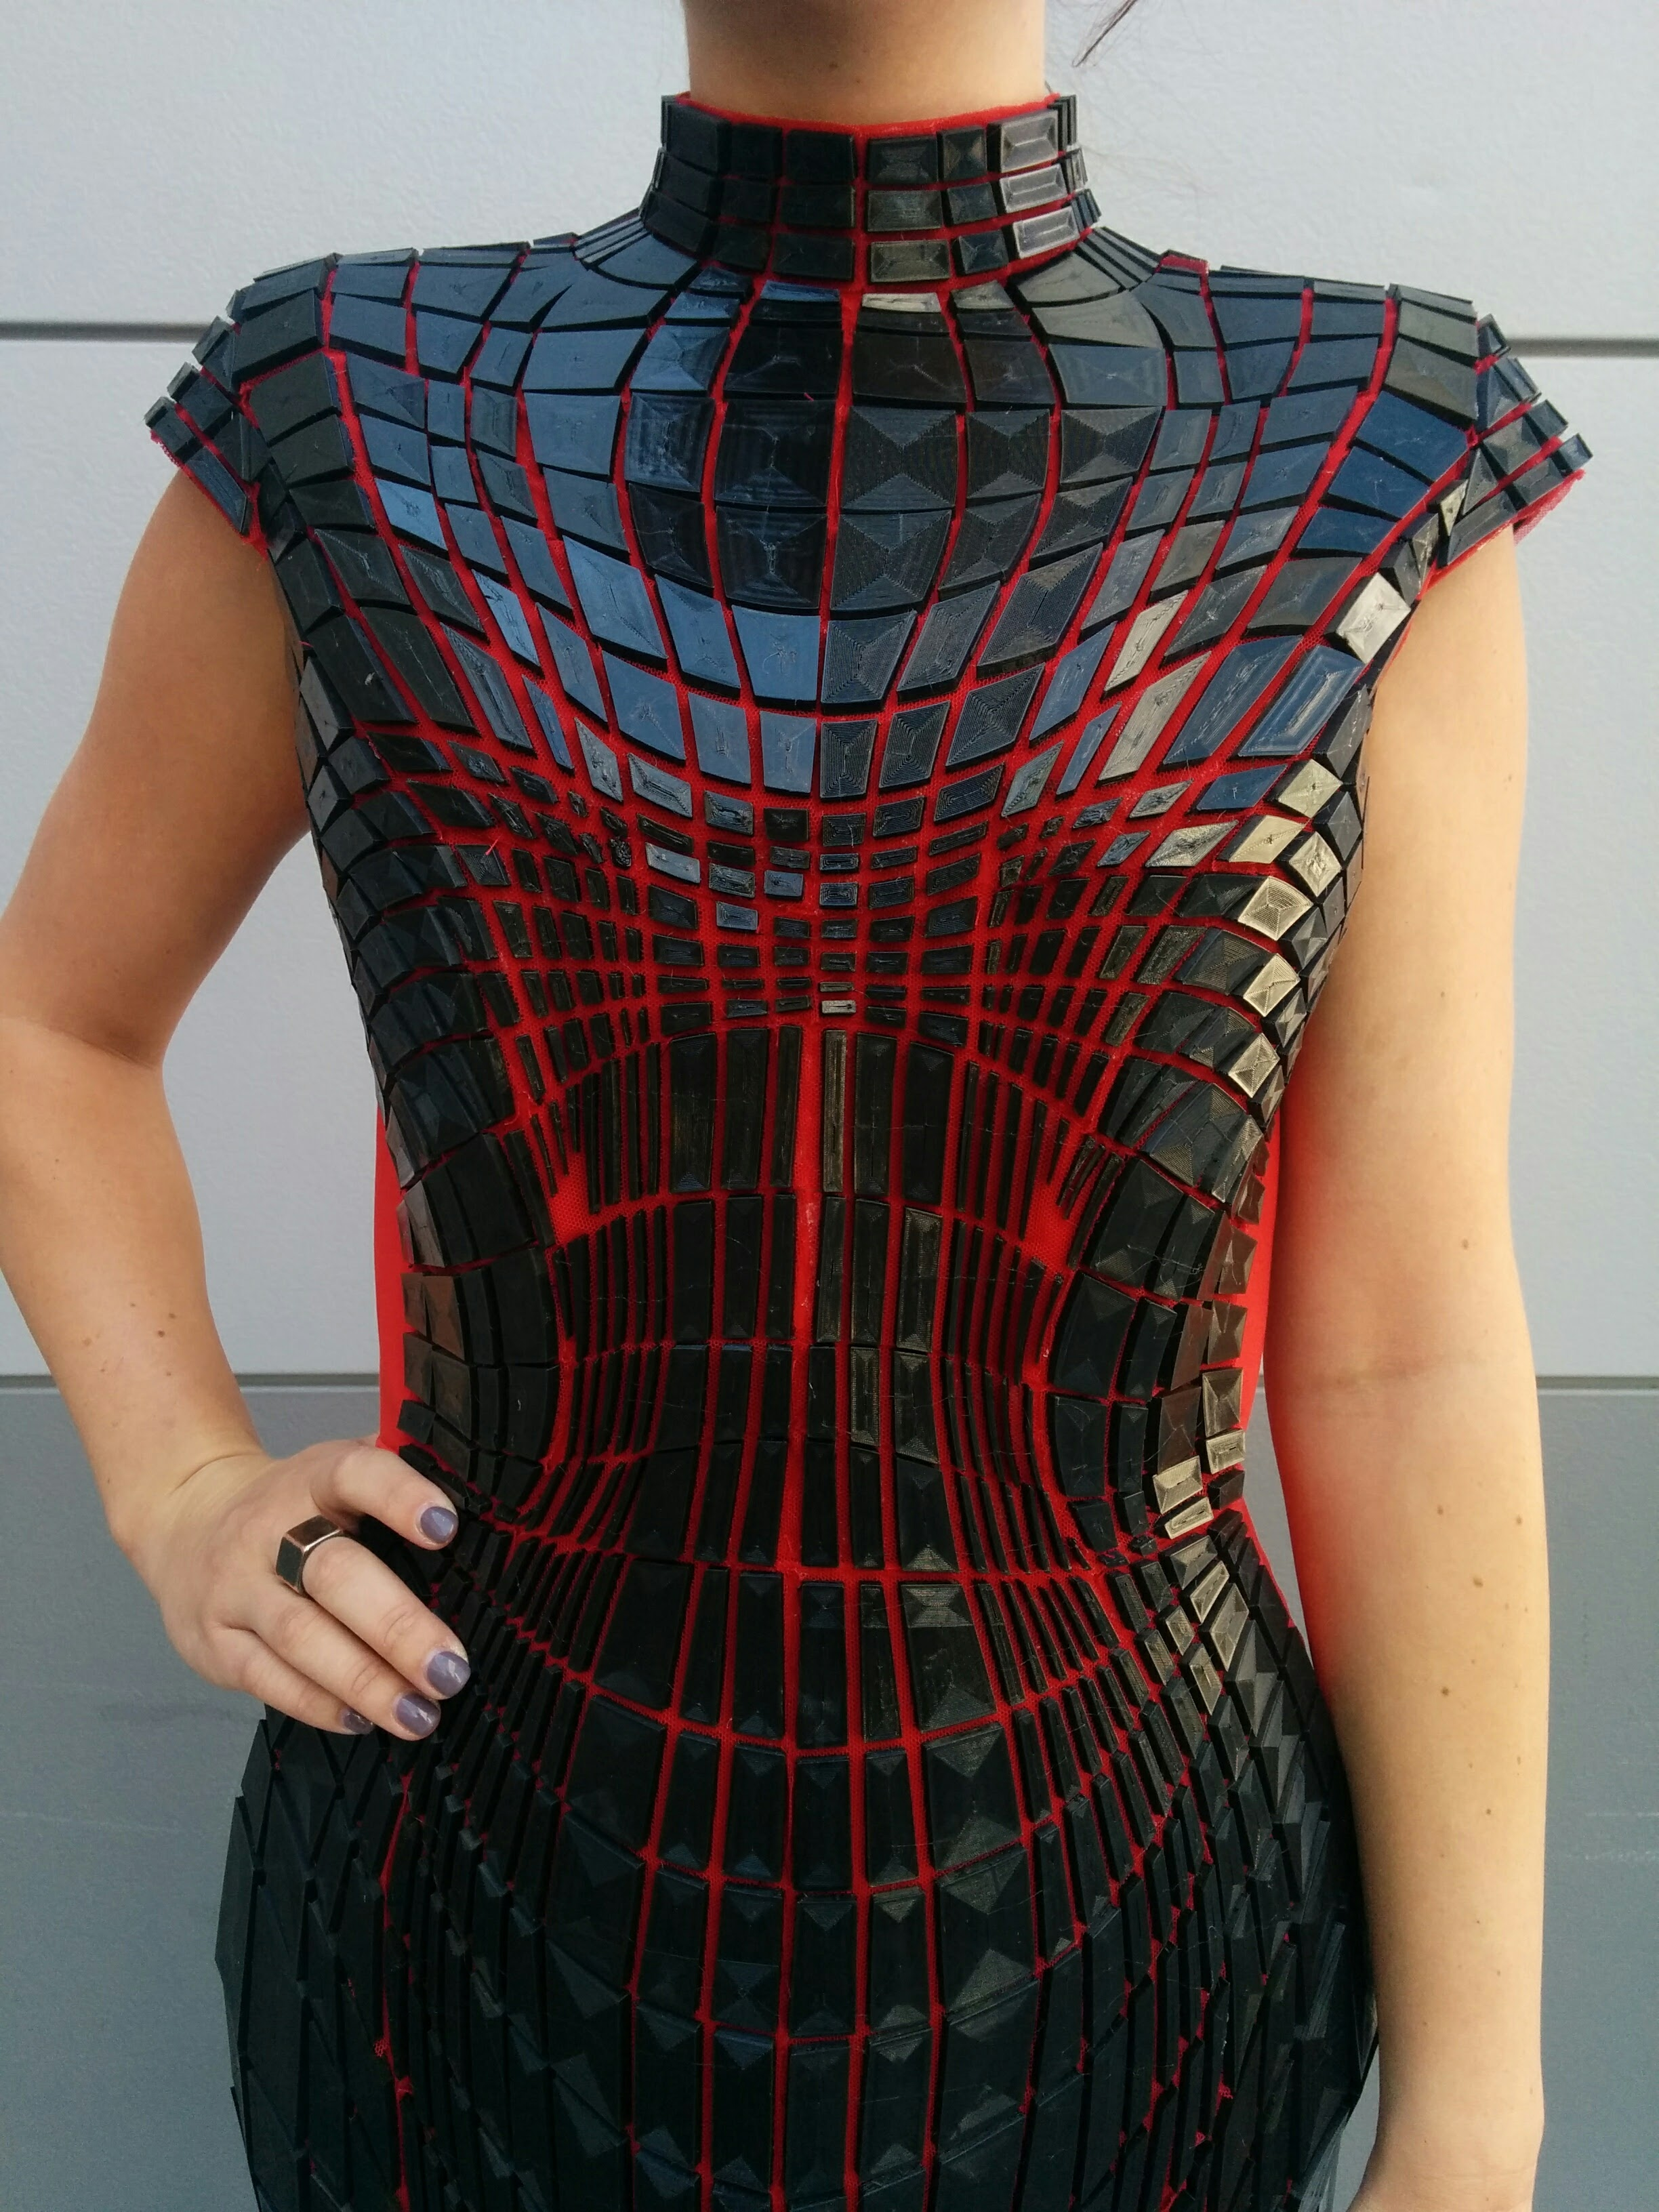 Final total pattern of the dress